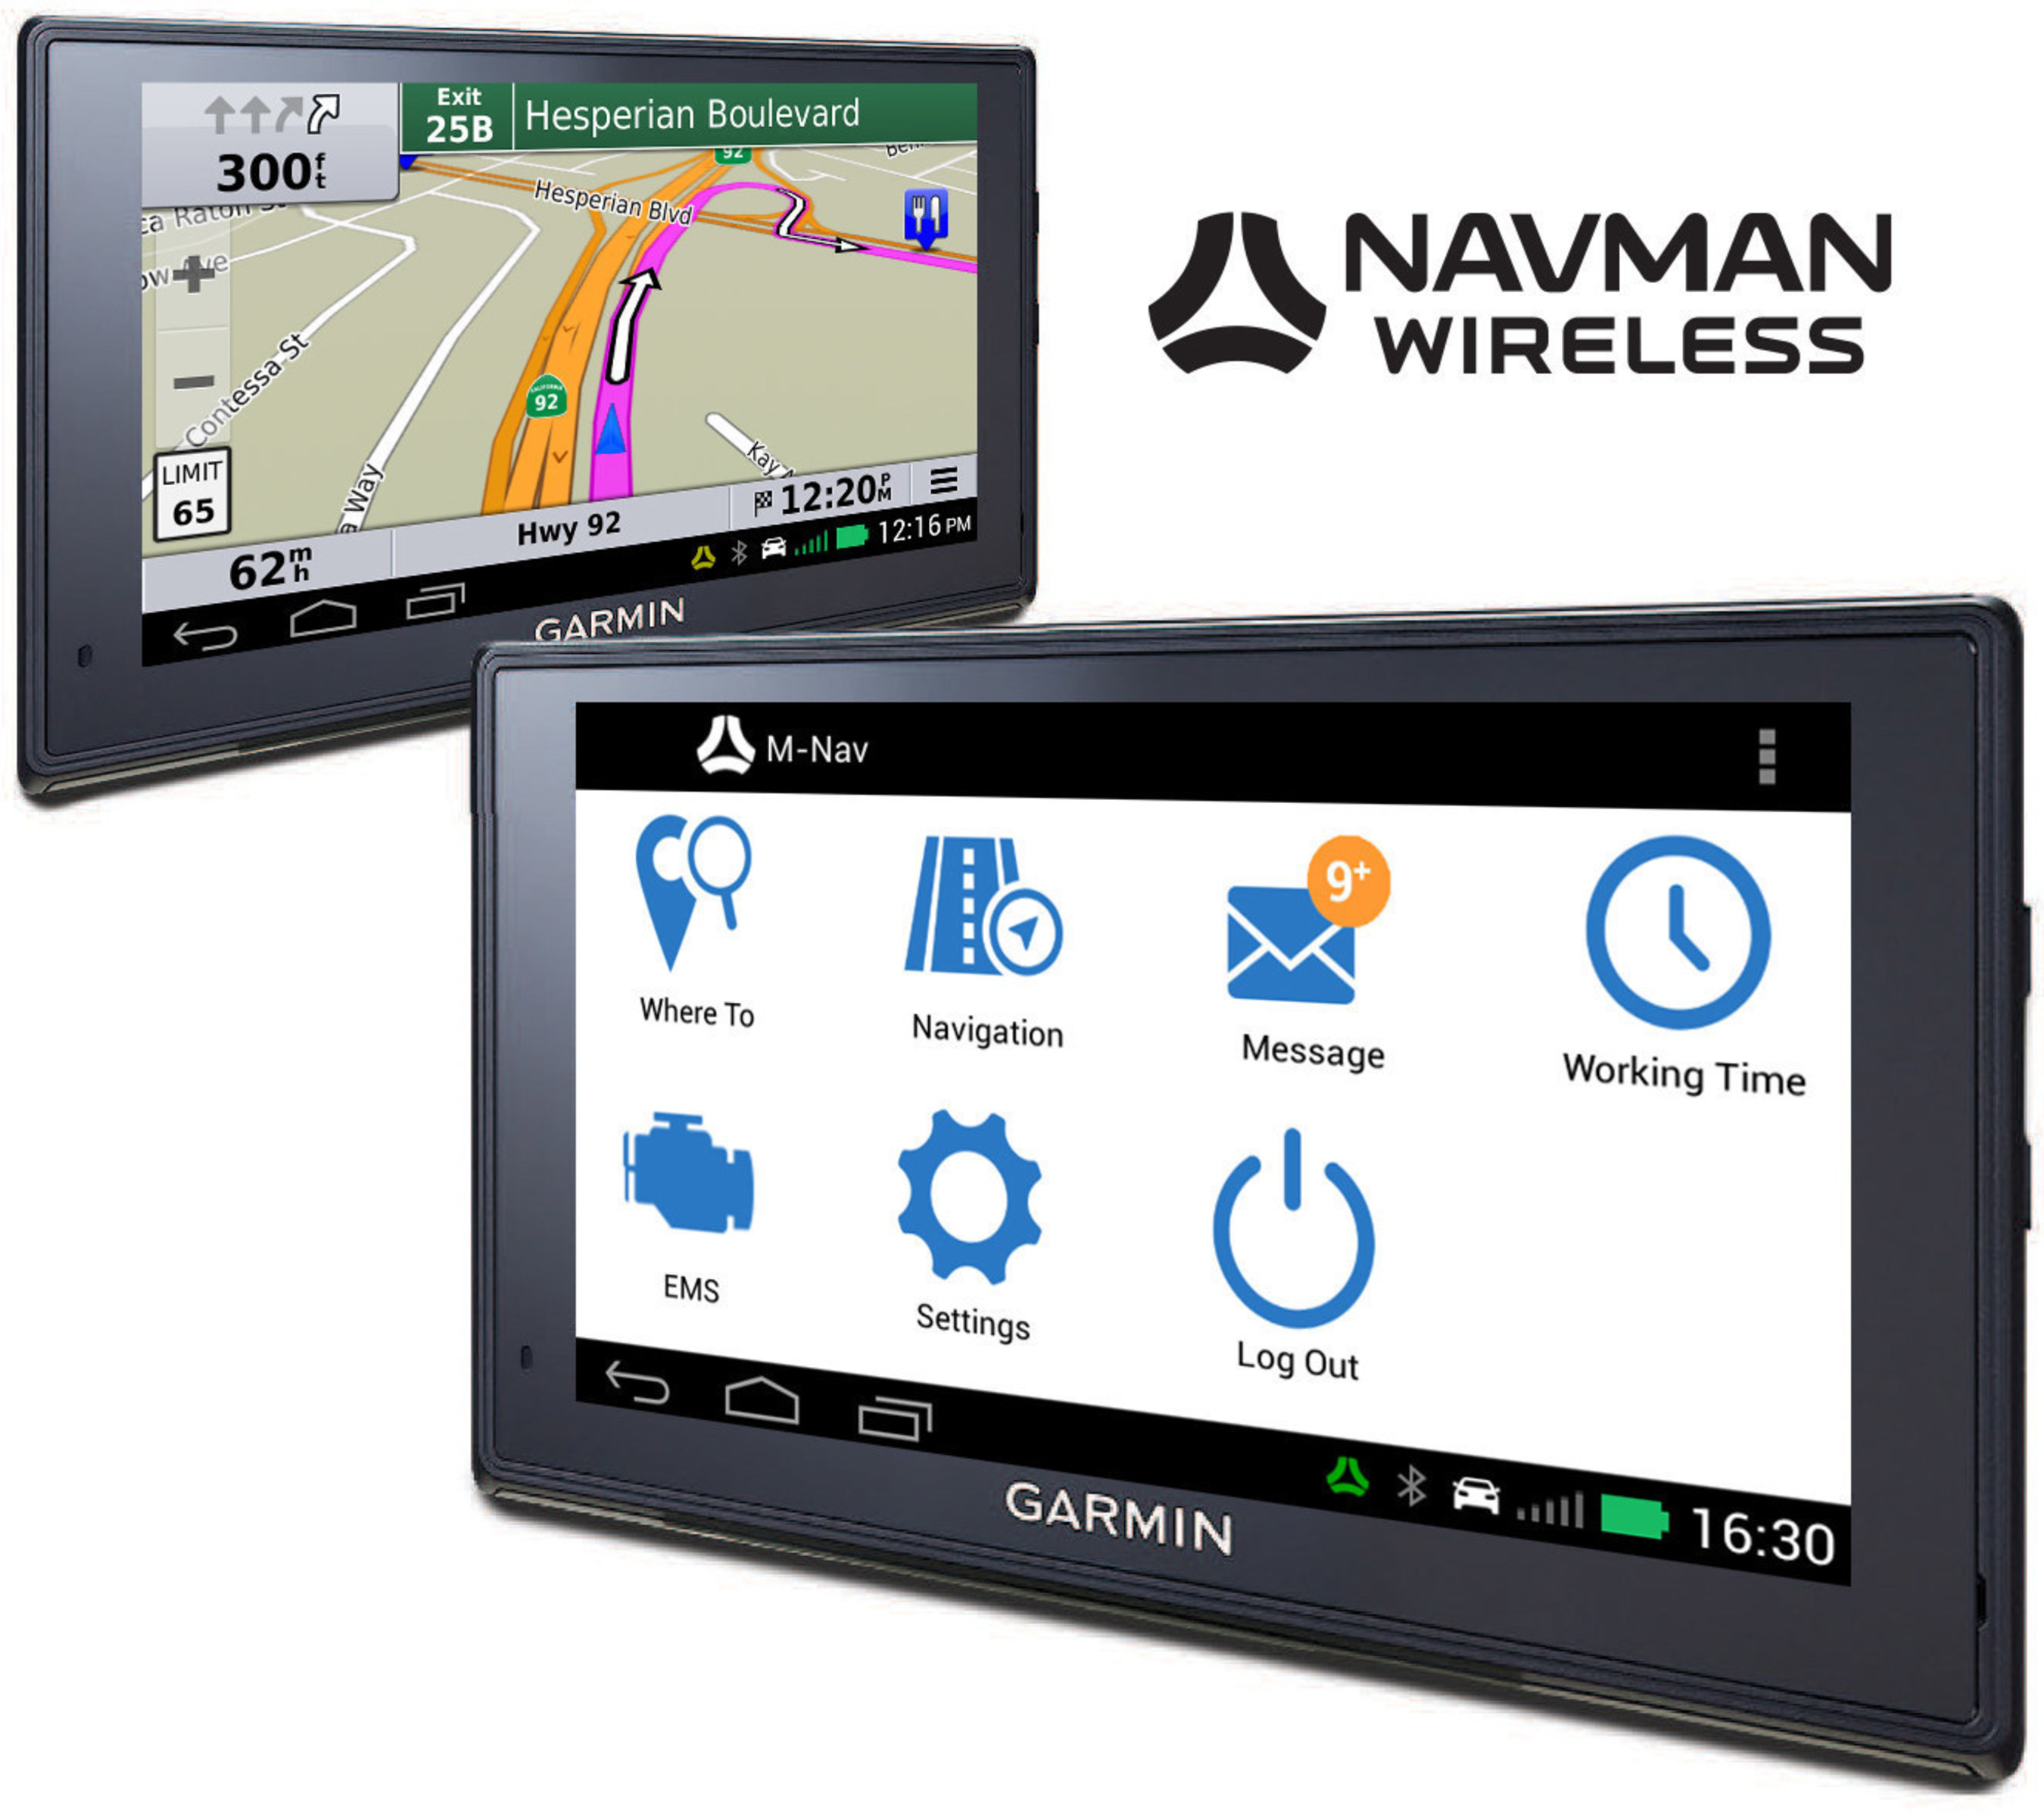 Navman Wireless UK to release three new software offerings as part of brand's innovative launch strategy